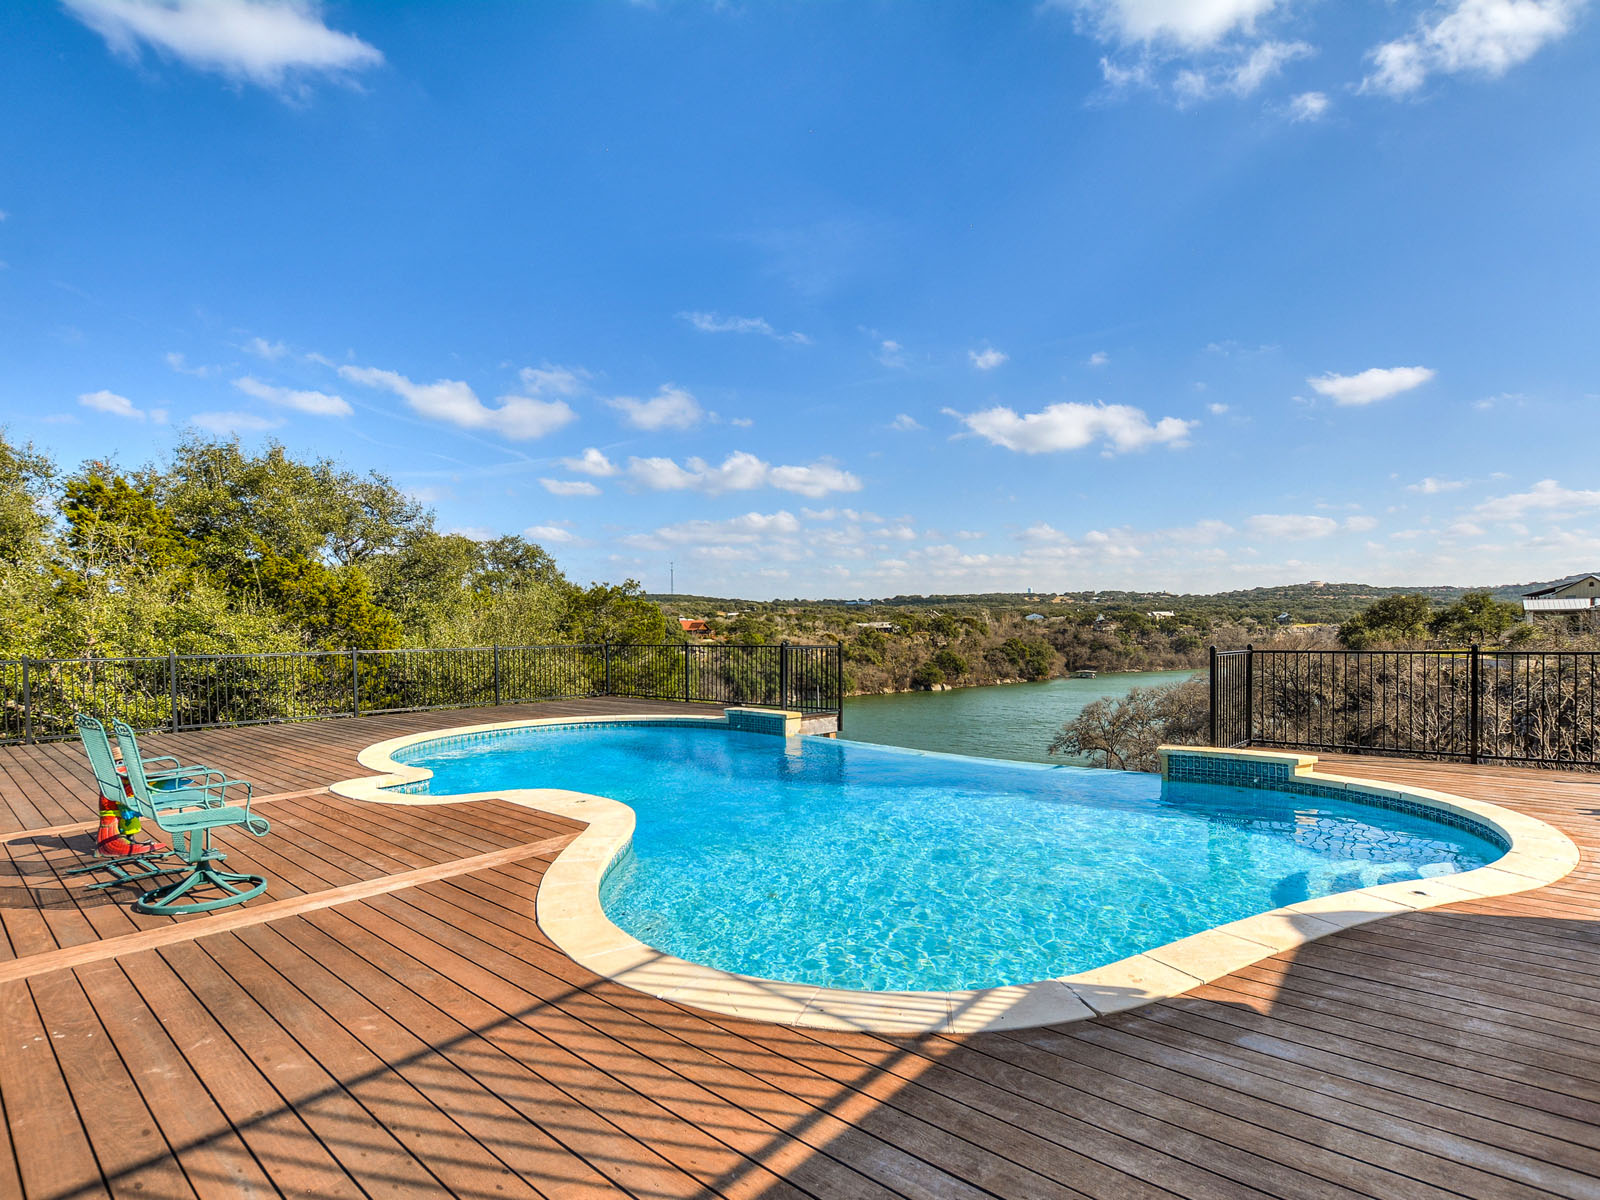 Single Family Home for Sale at Hill Country Estate on the River 23704 Replica Rd Spicewood, Texas 78669 United States